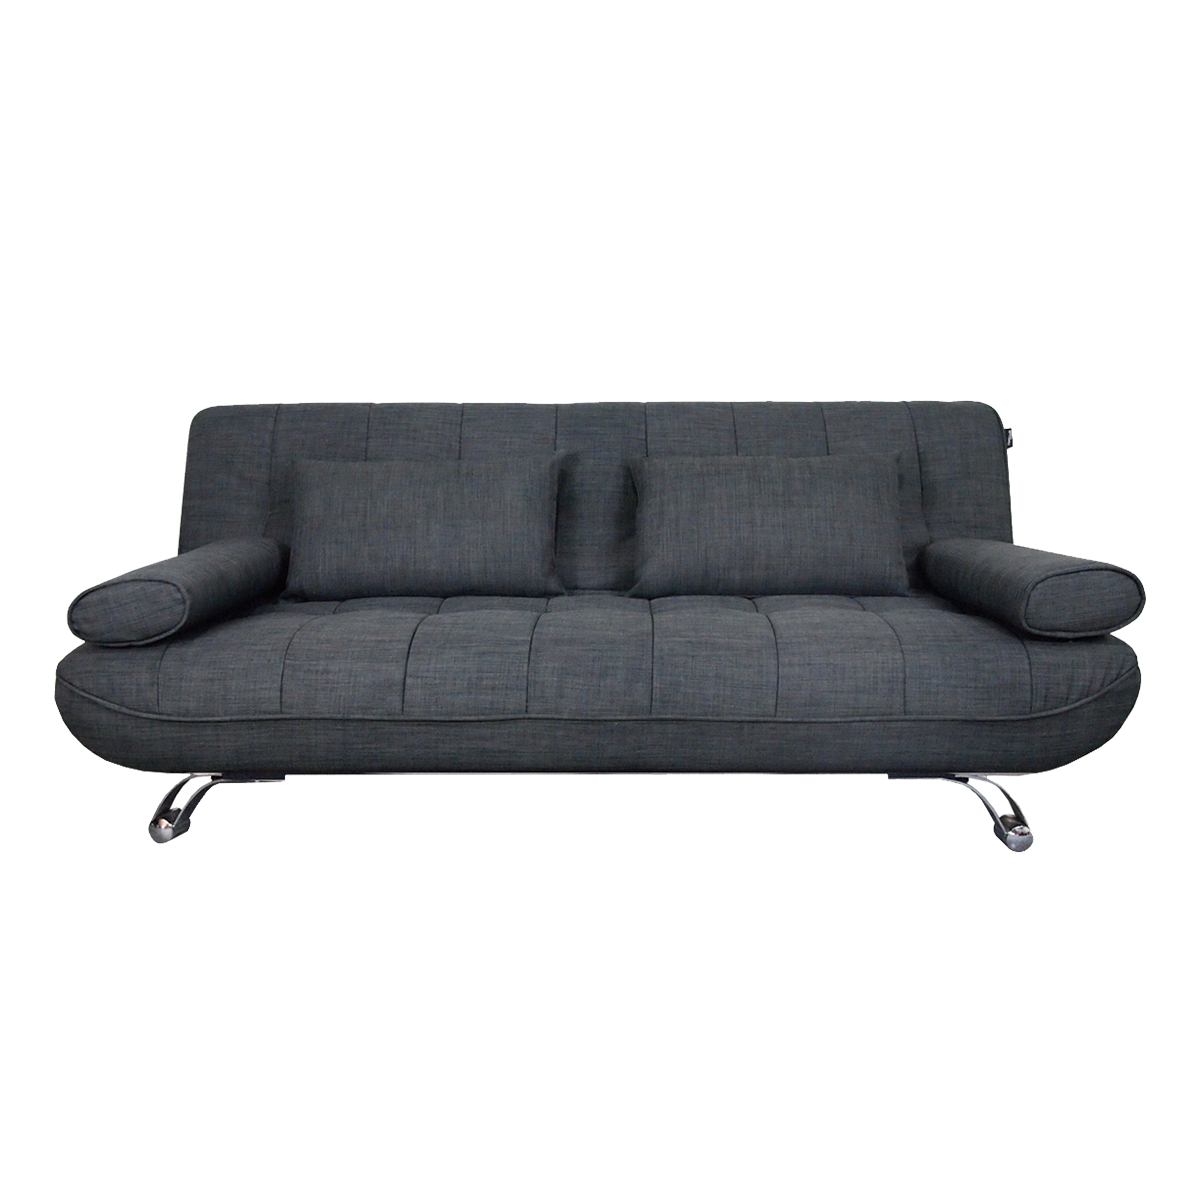 couch more staunton products bed just sofa to than c a